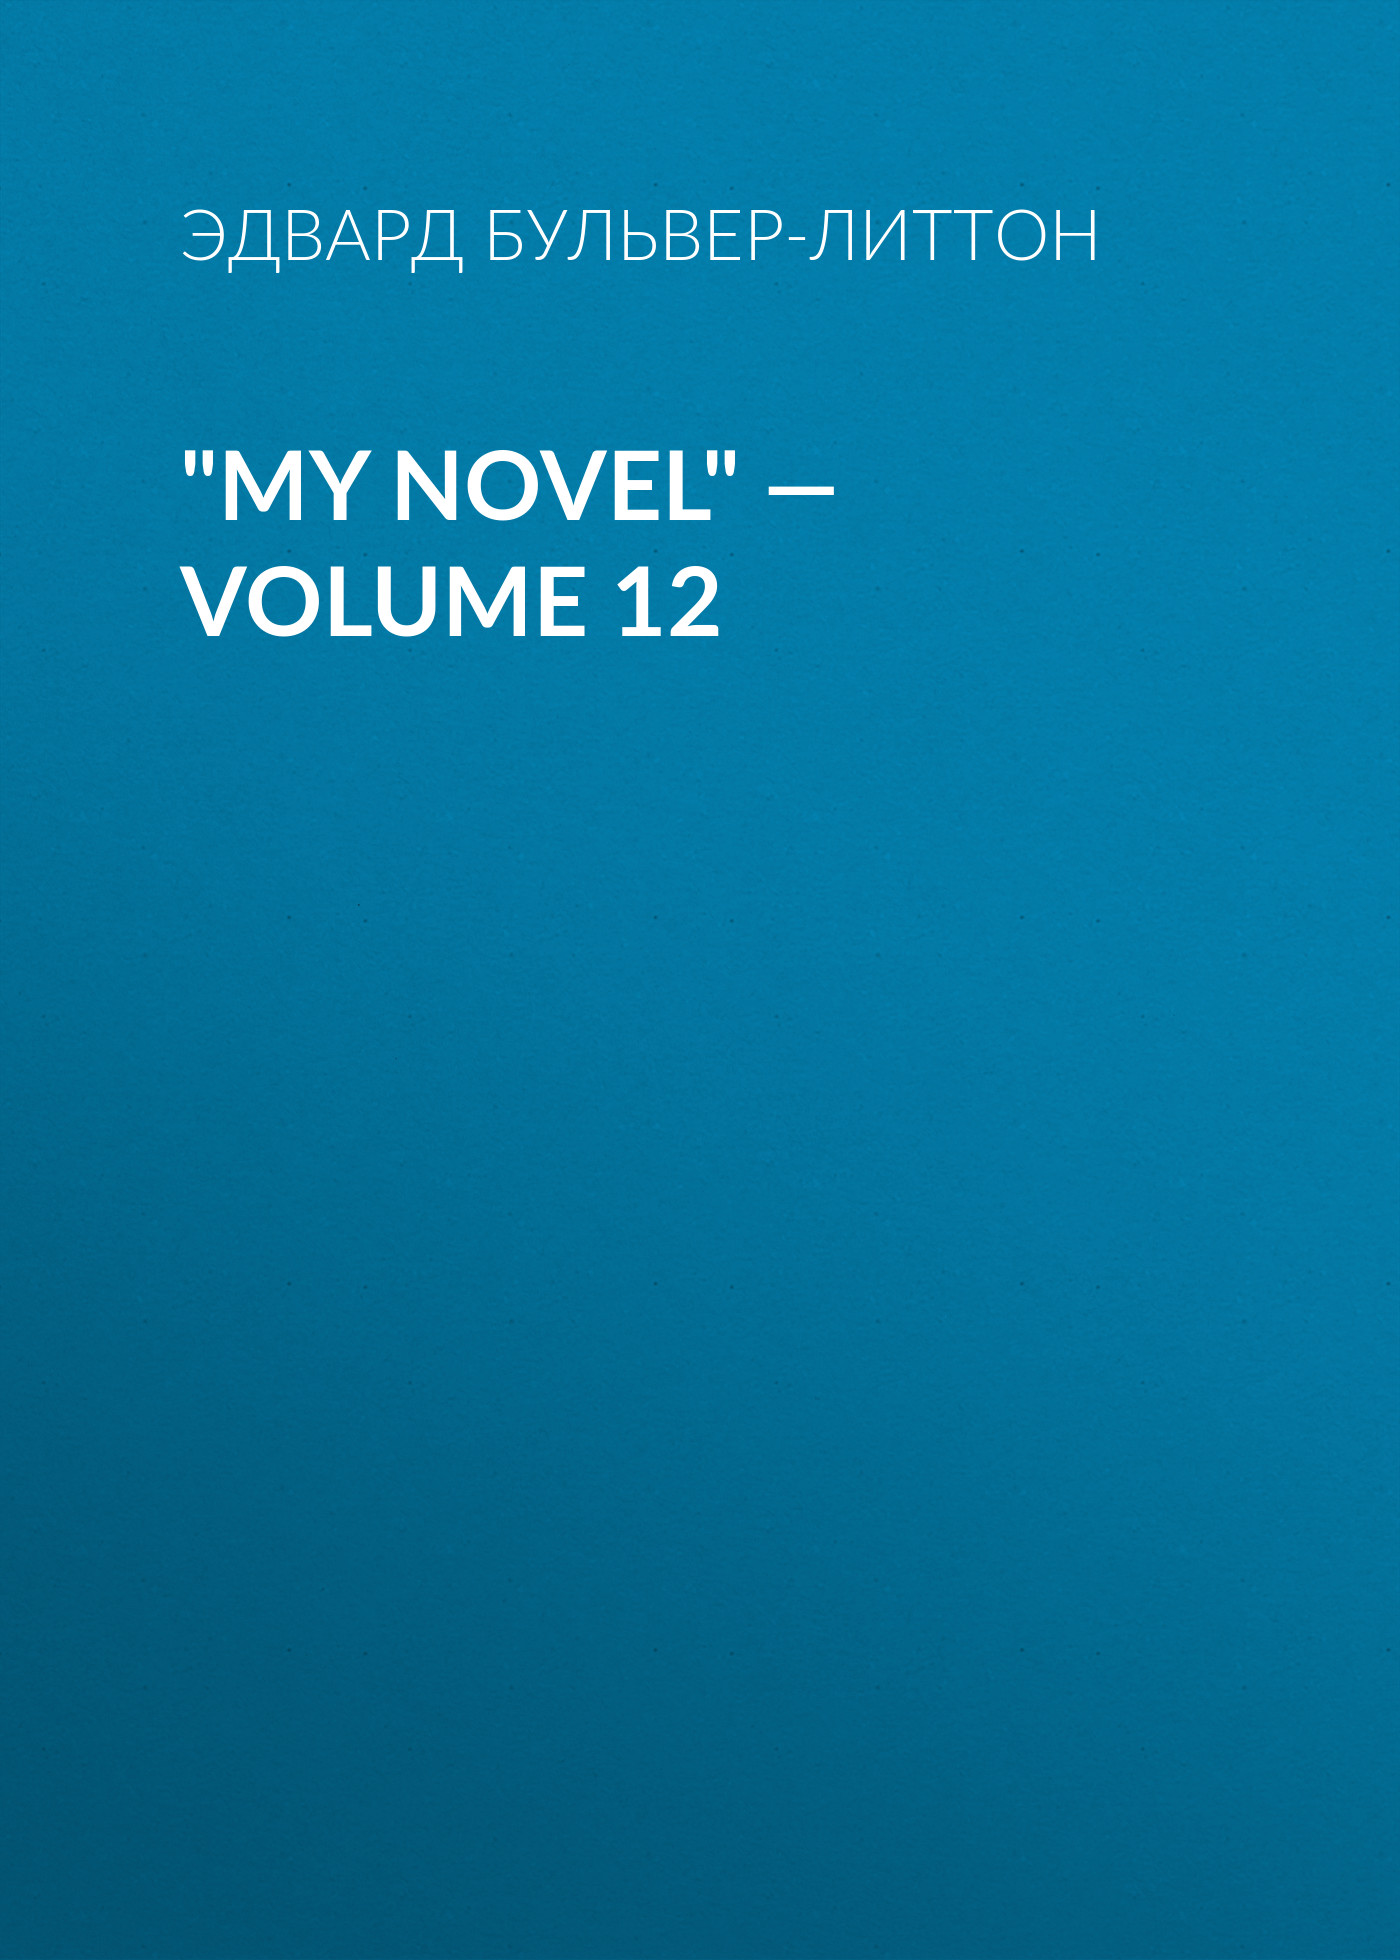 Эдвард Бульвер-Литтон My Novel — Volume 12 эдвард бульвер литтон my novel volume 05